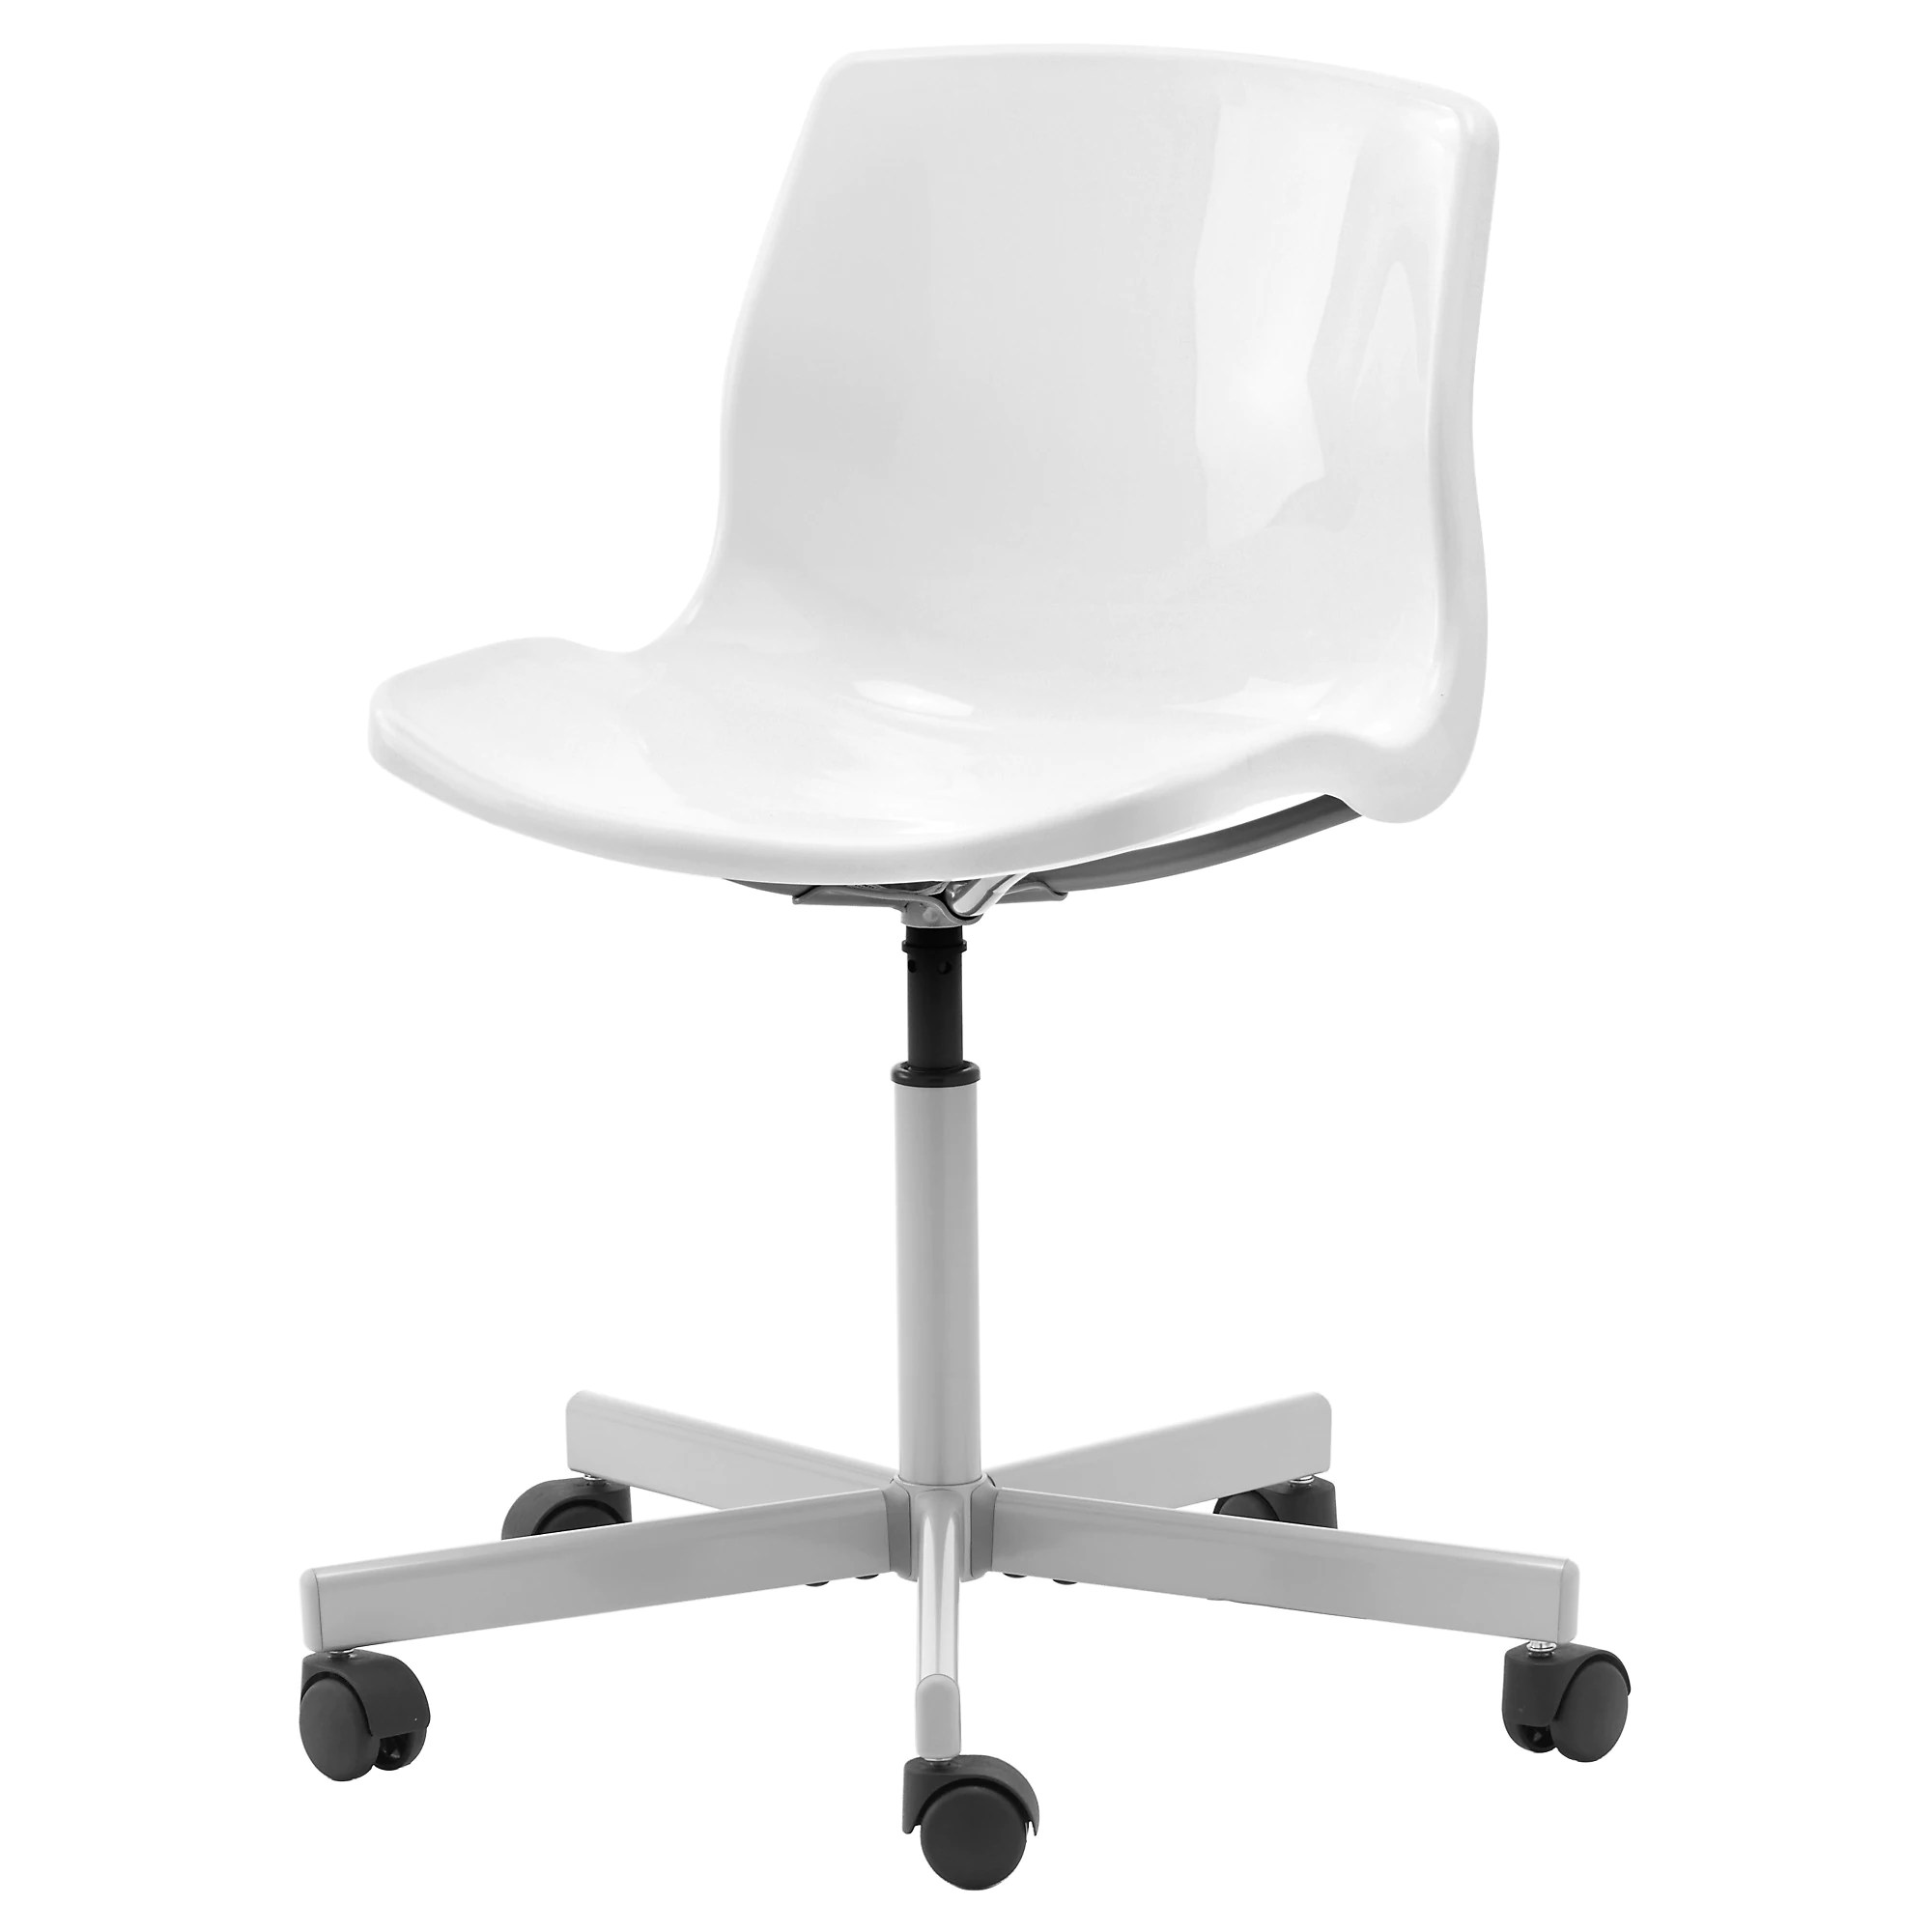 Neon Ikea Snille Swivel Chair White